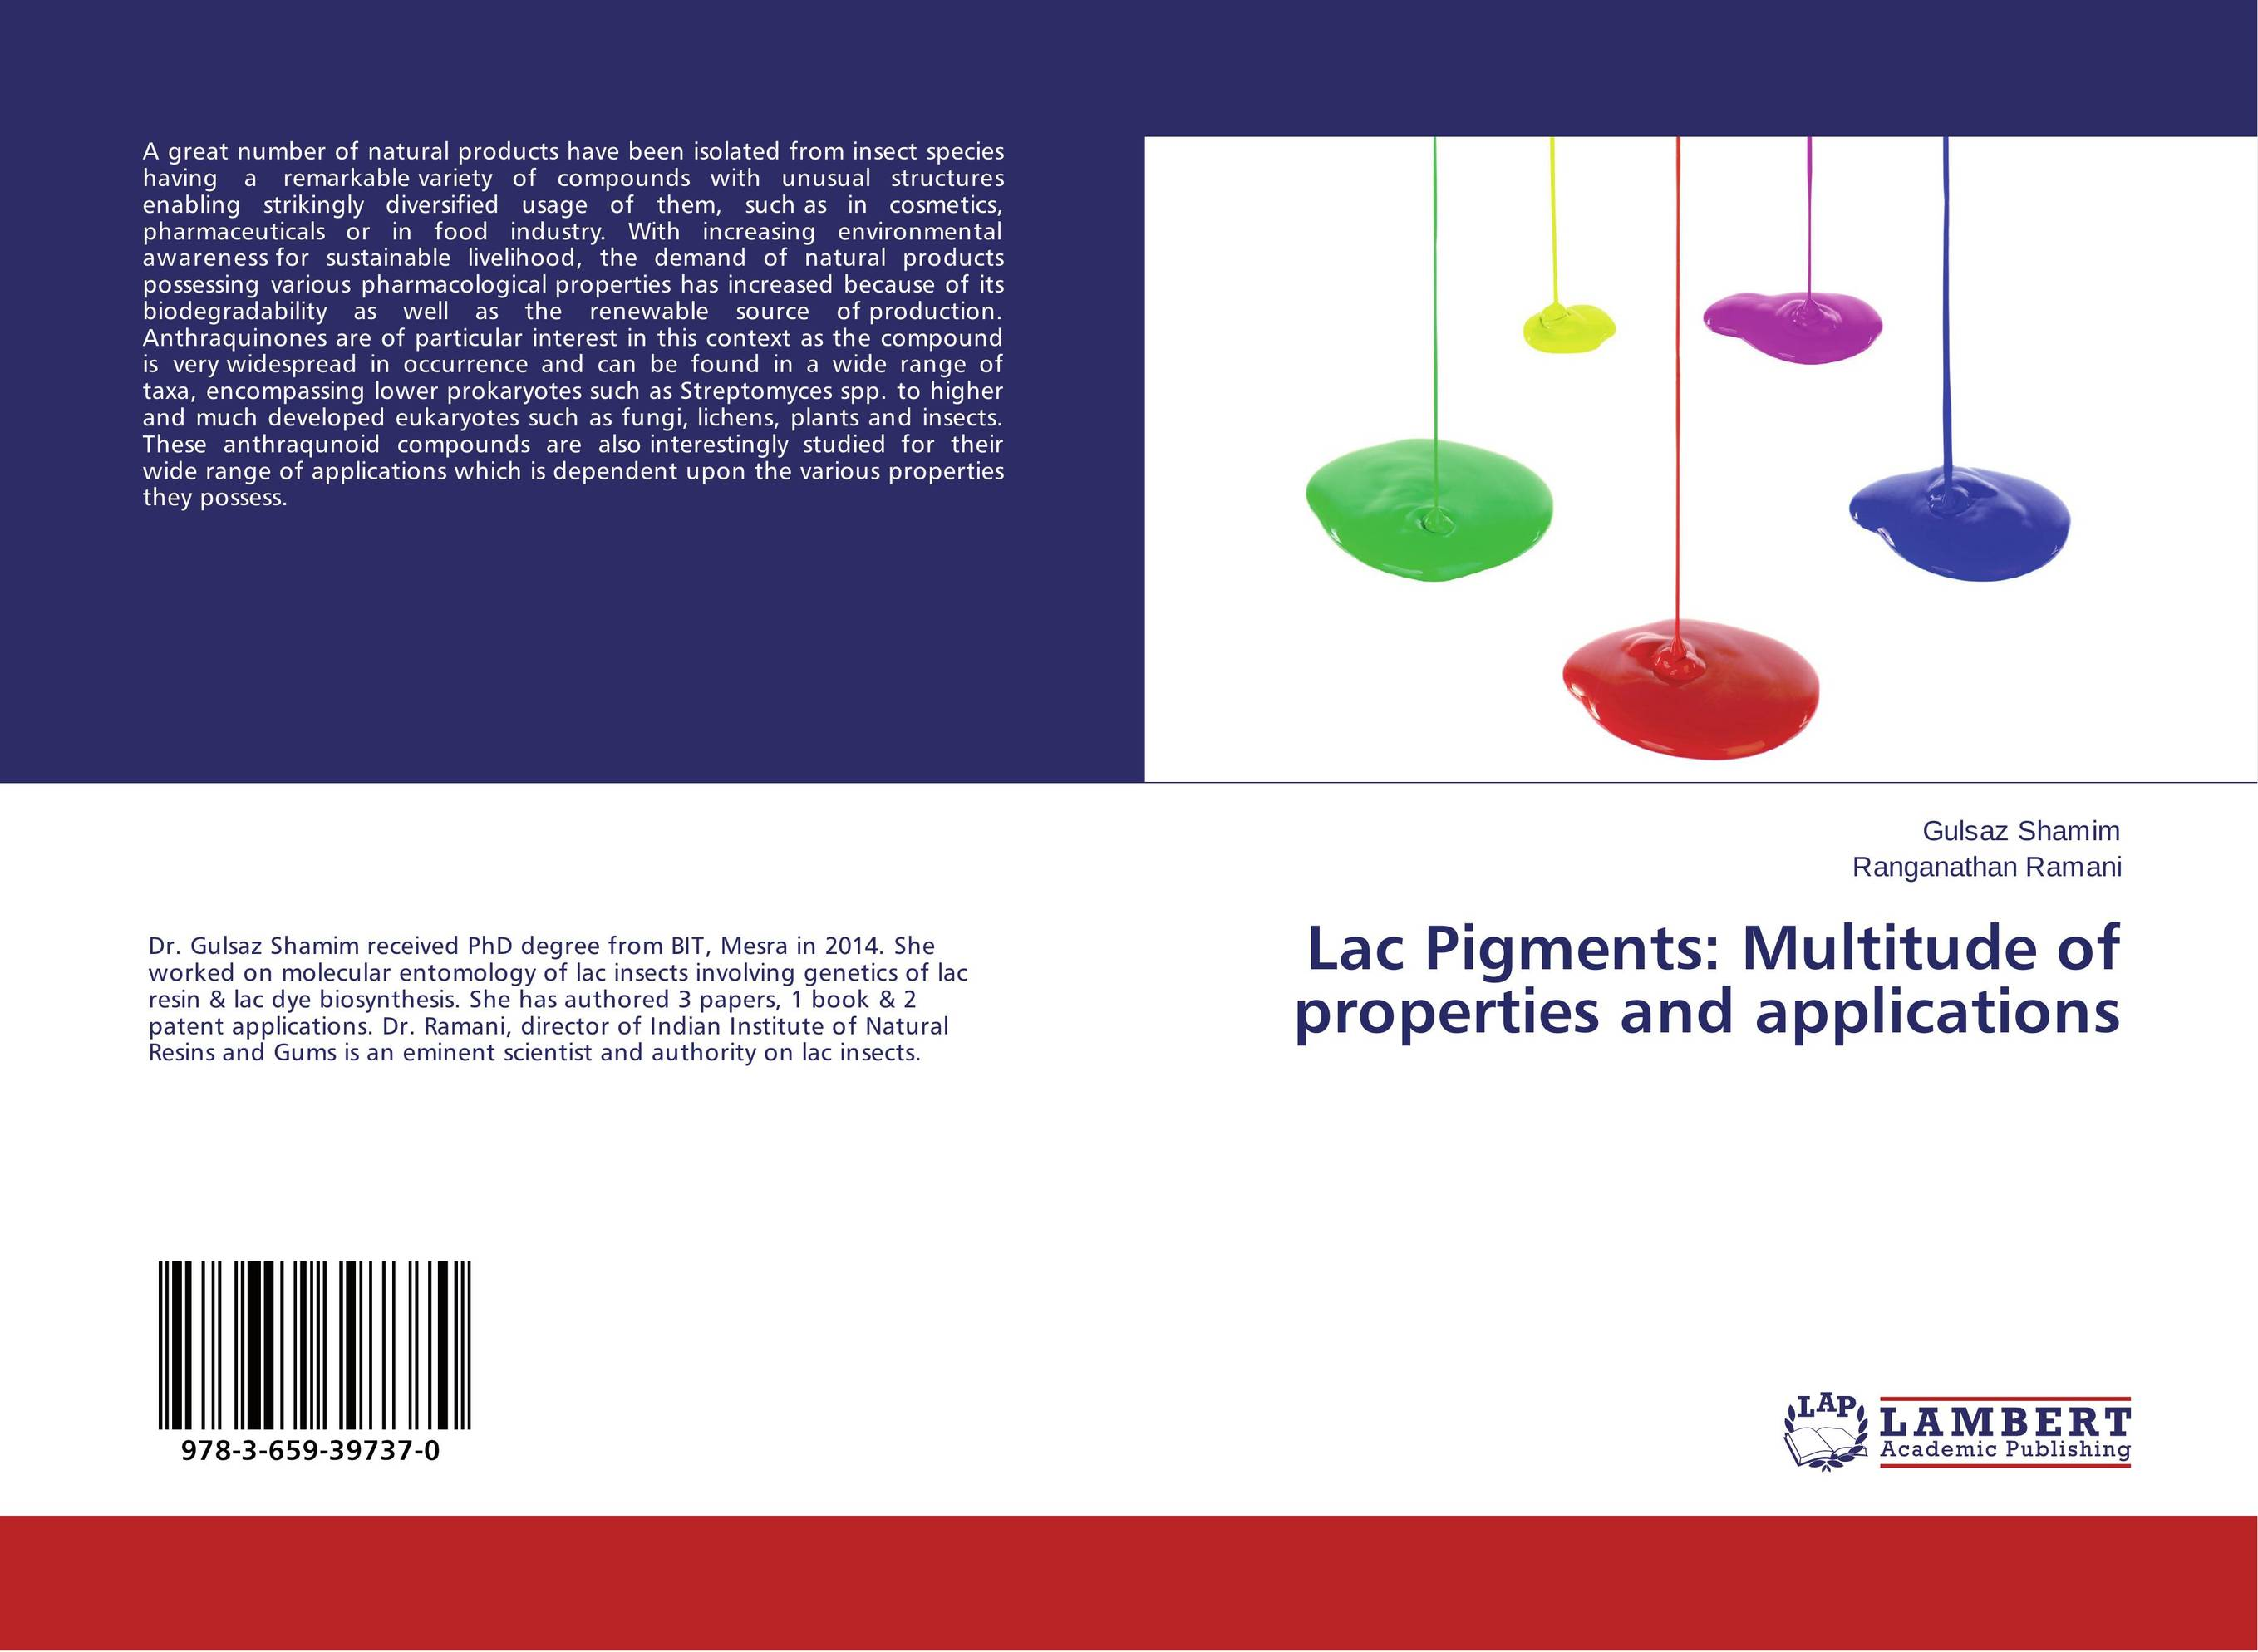 все цены на Lac Pigments: Multitude of properties and applications